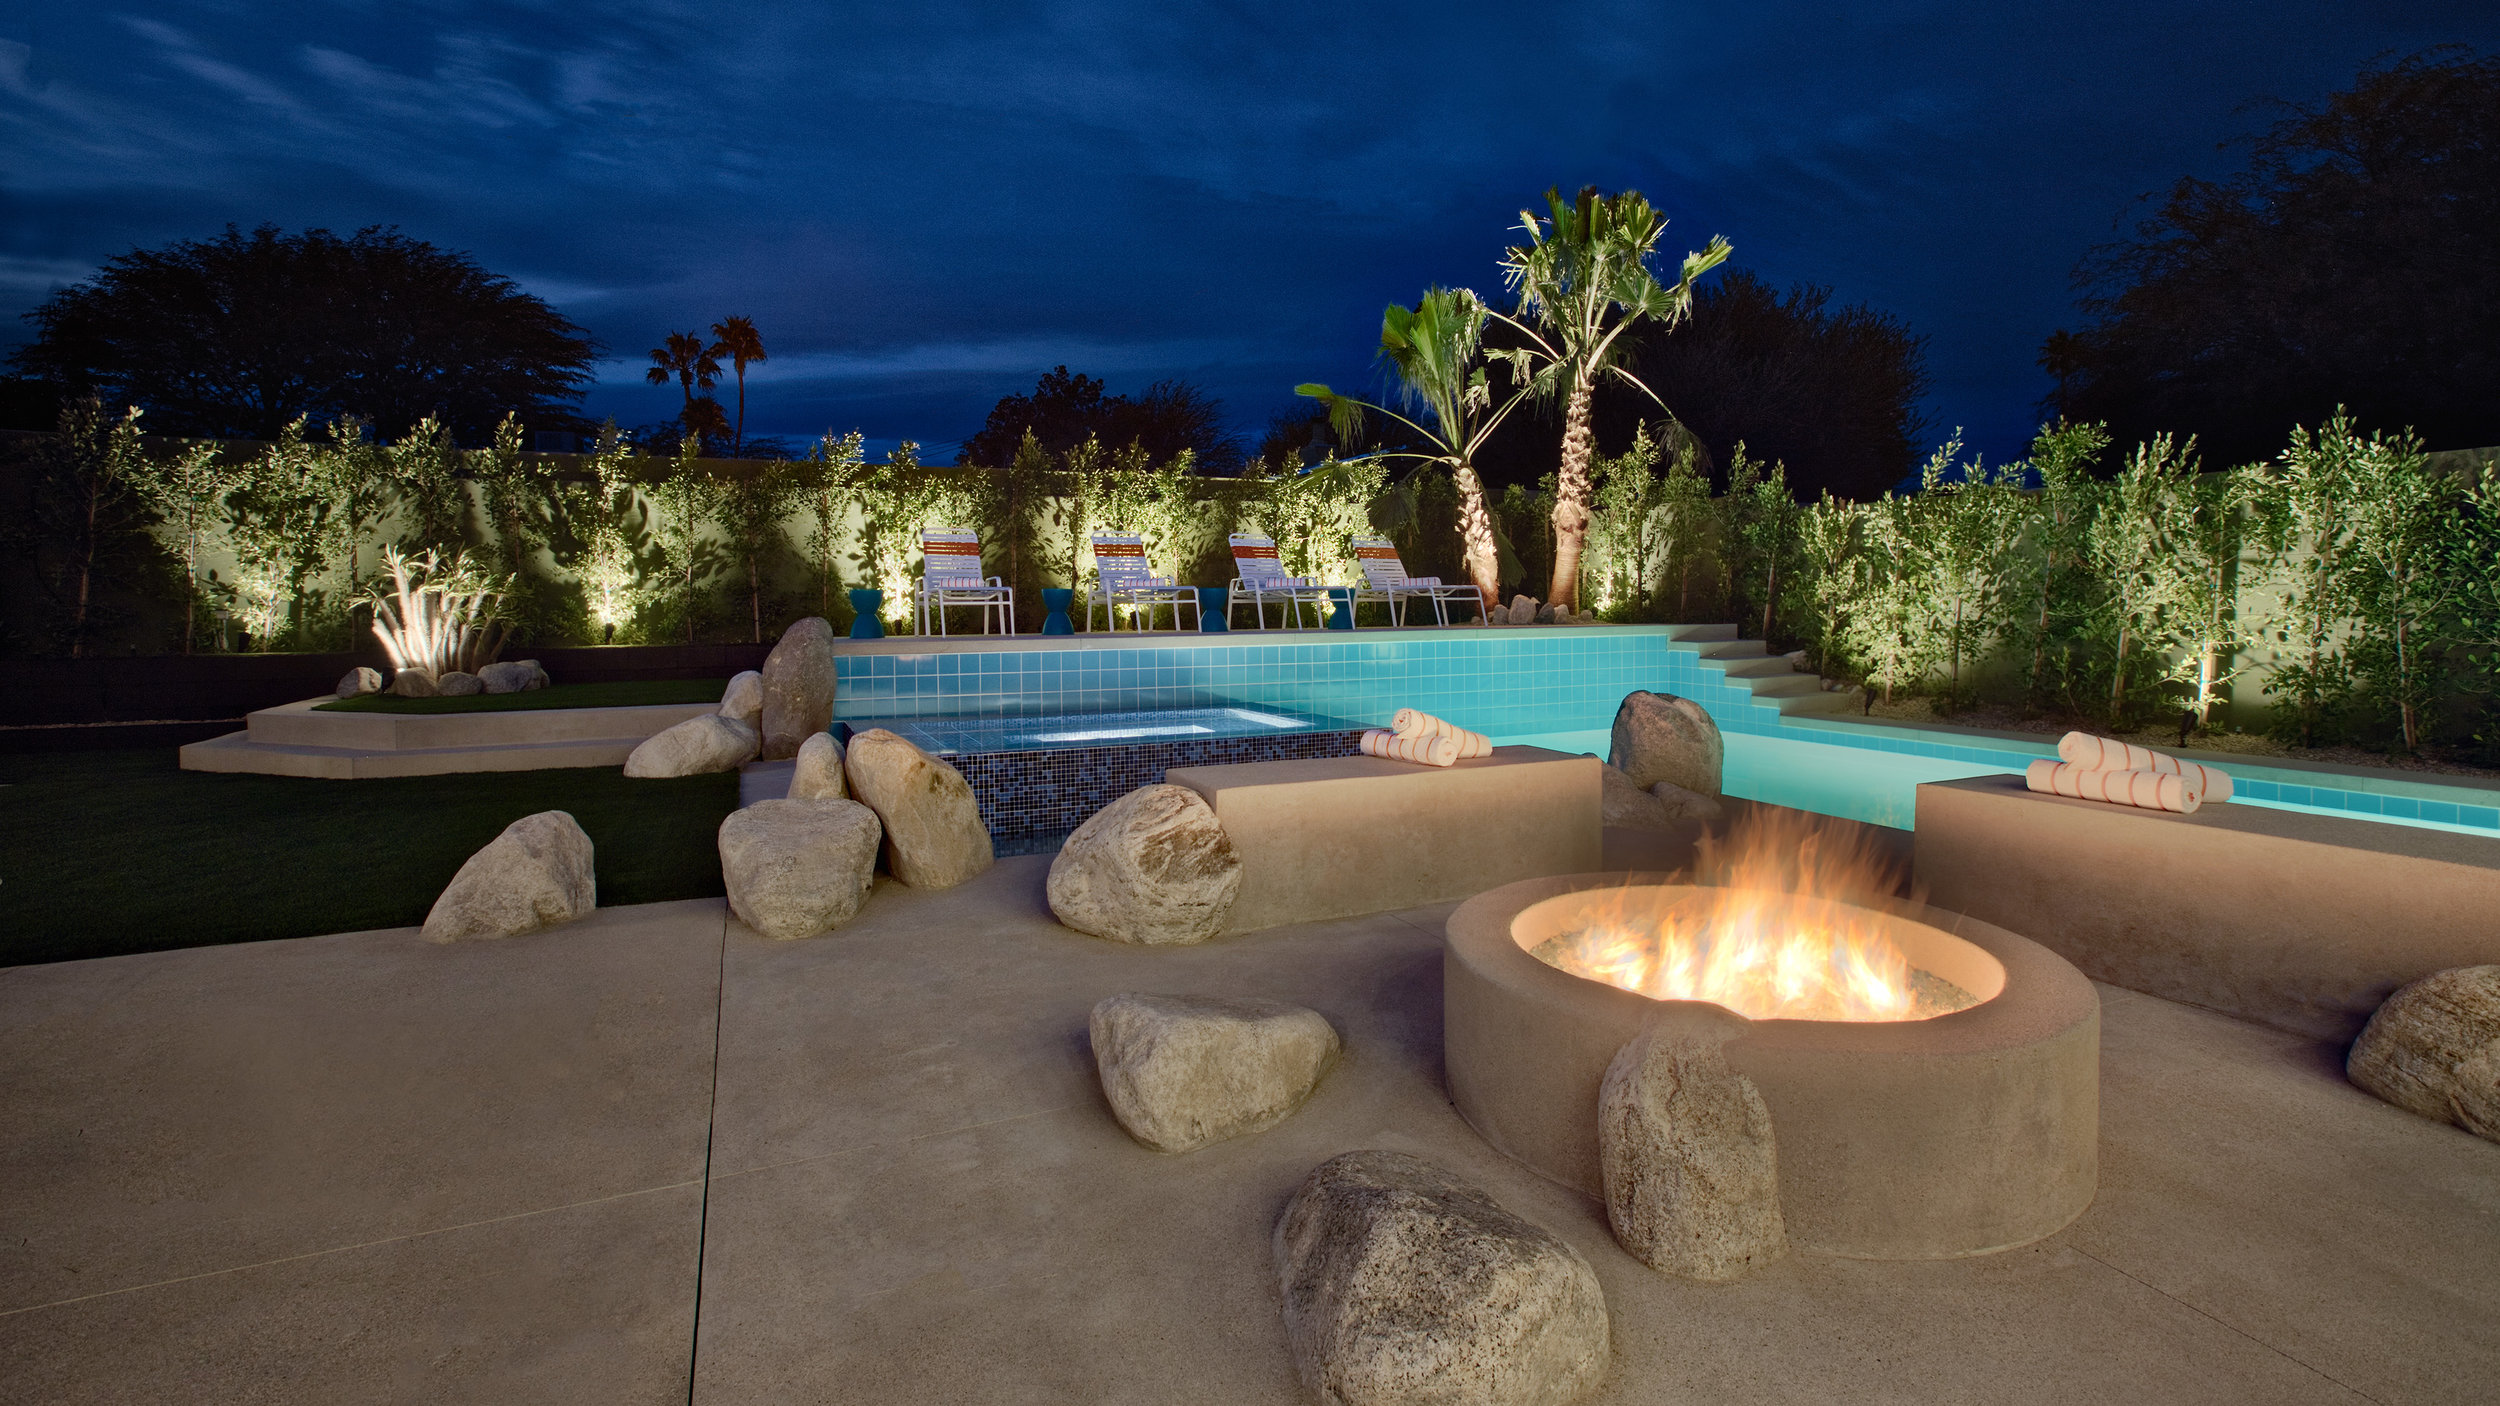 Outdoor fire-pit and conversation area.